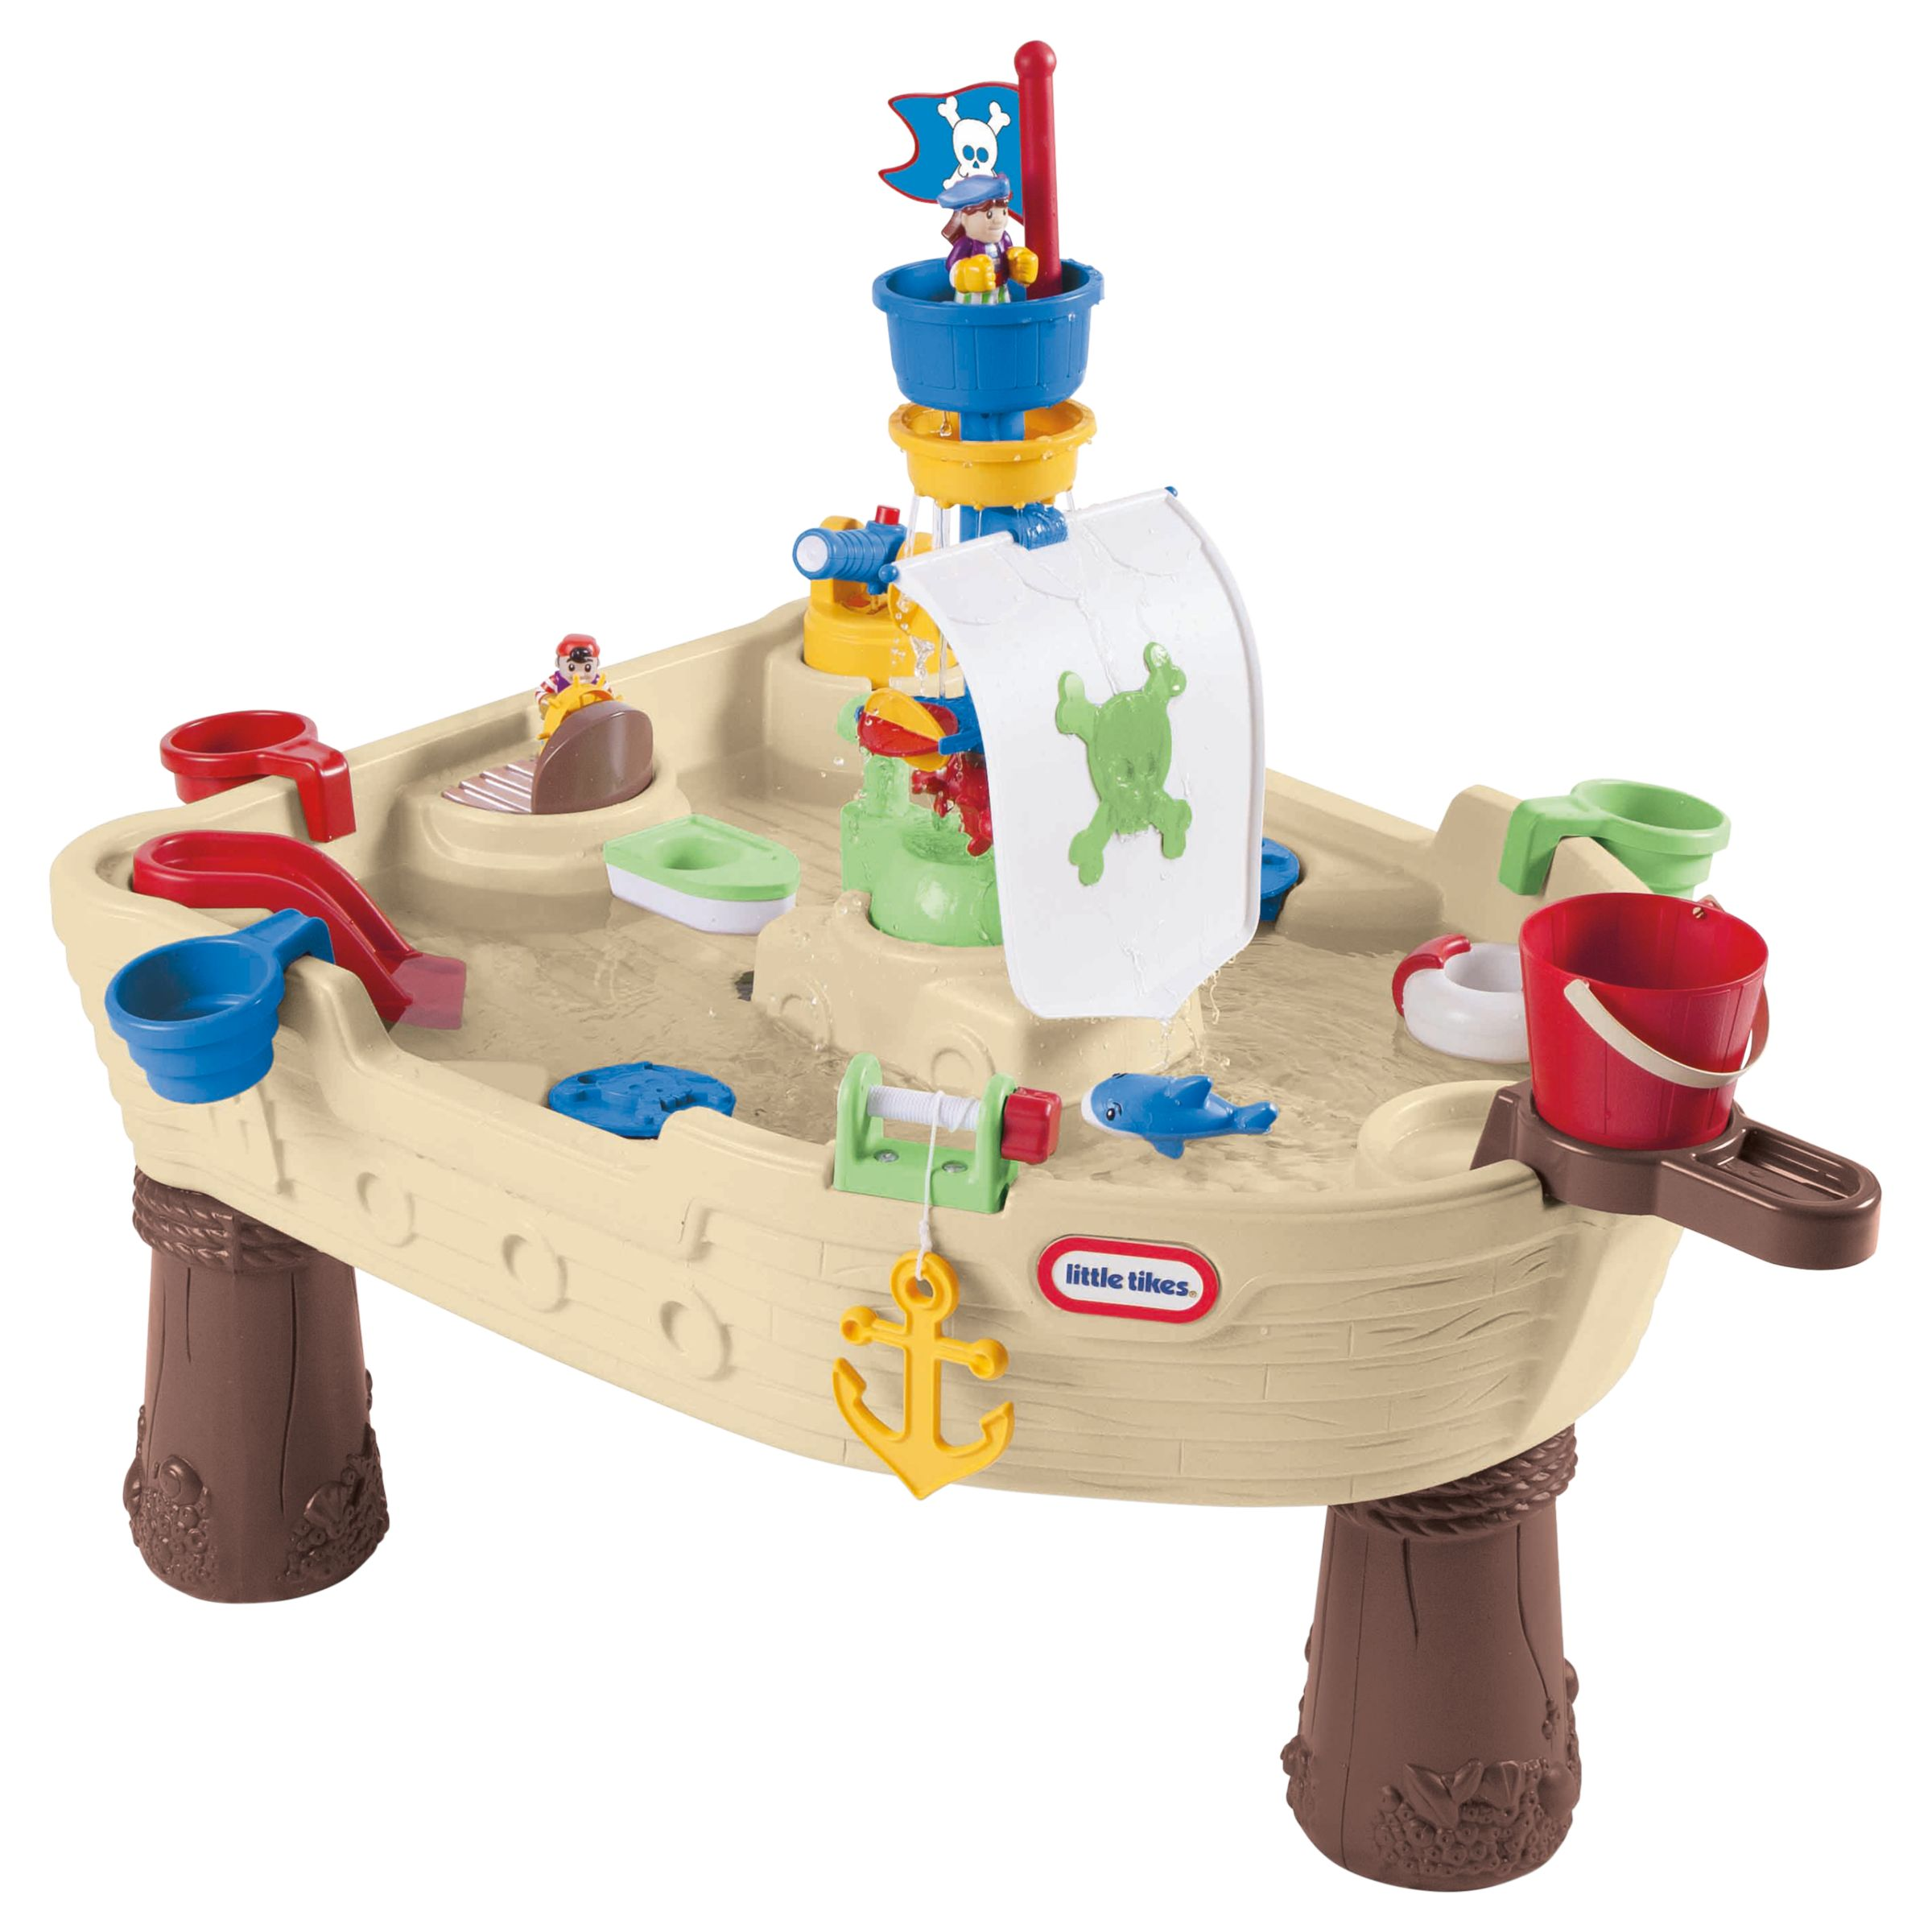 Little Tikes Little Tikes Anchors Away Pirate Ship